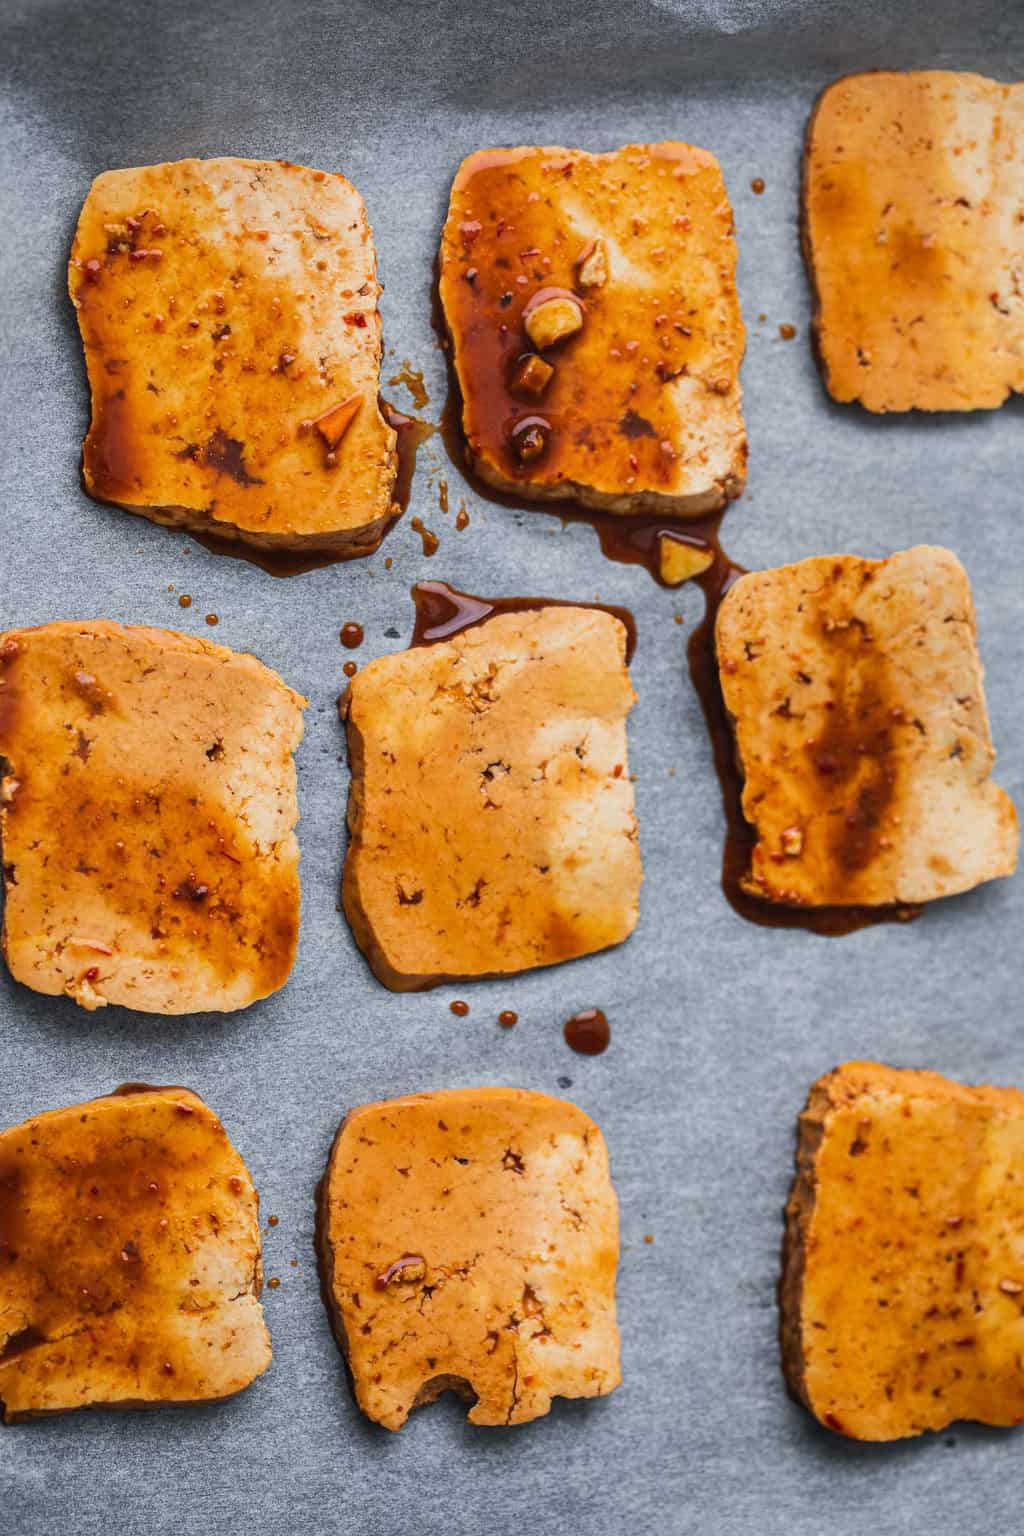 BBQ tofu on a baking tray